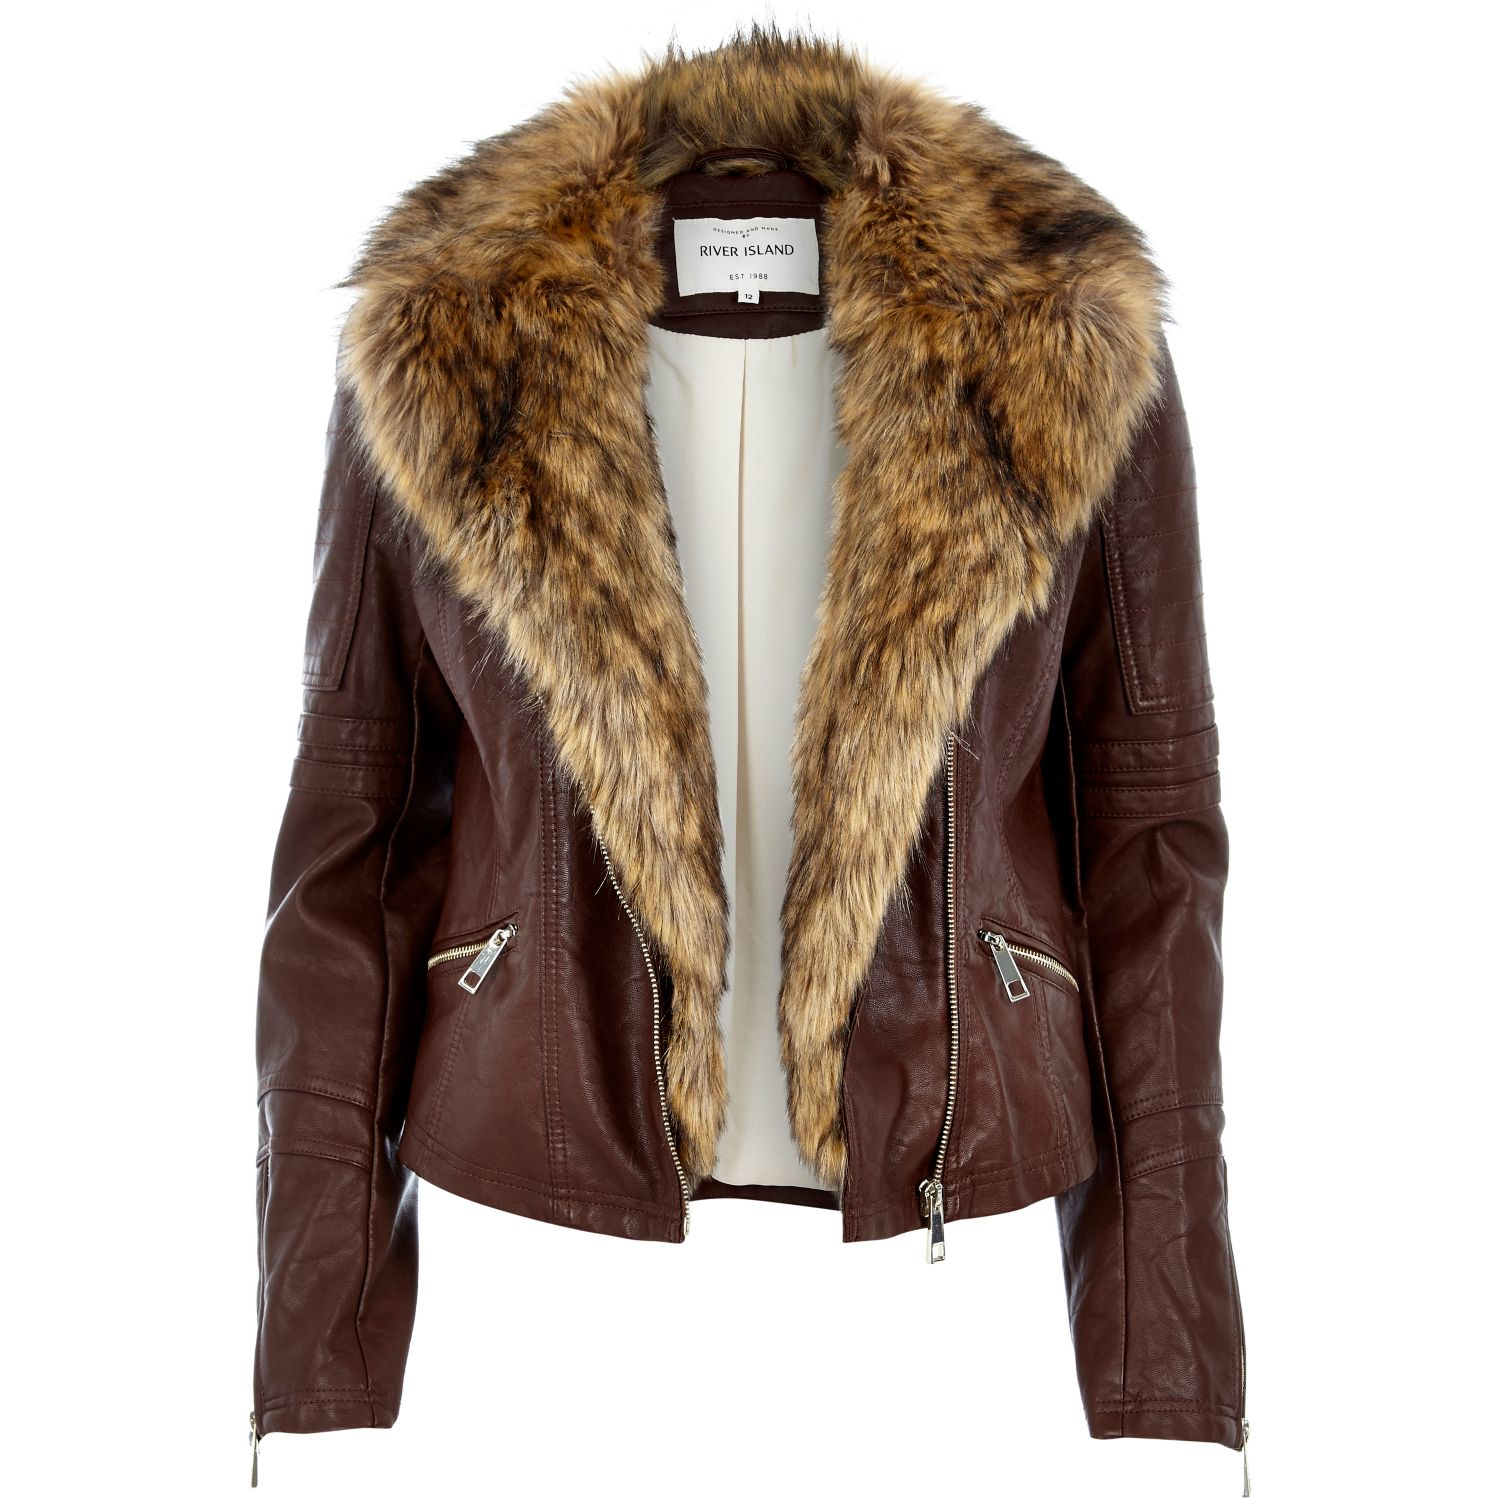 Overland is a leading retailer of women's and men's leather coats, lambskin leather Lifetime guarantee · Free shipping on returns · Large online selection · Superb, unmatched quality/10 ( reviews).